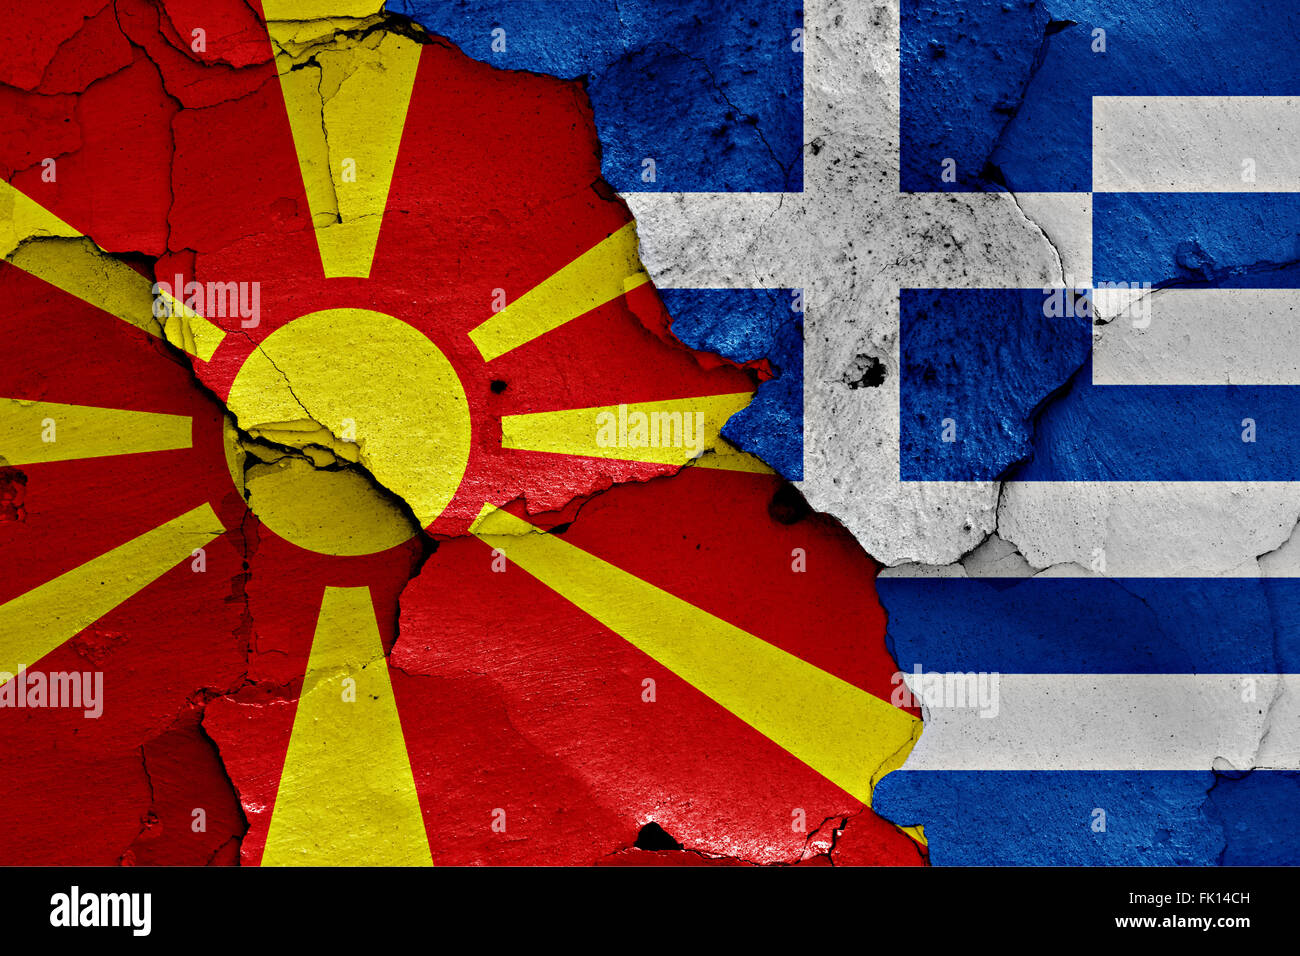 flags of Macedonia and Greece painted on cracked wall - Stock Image